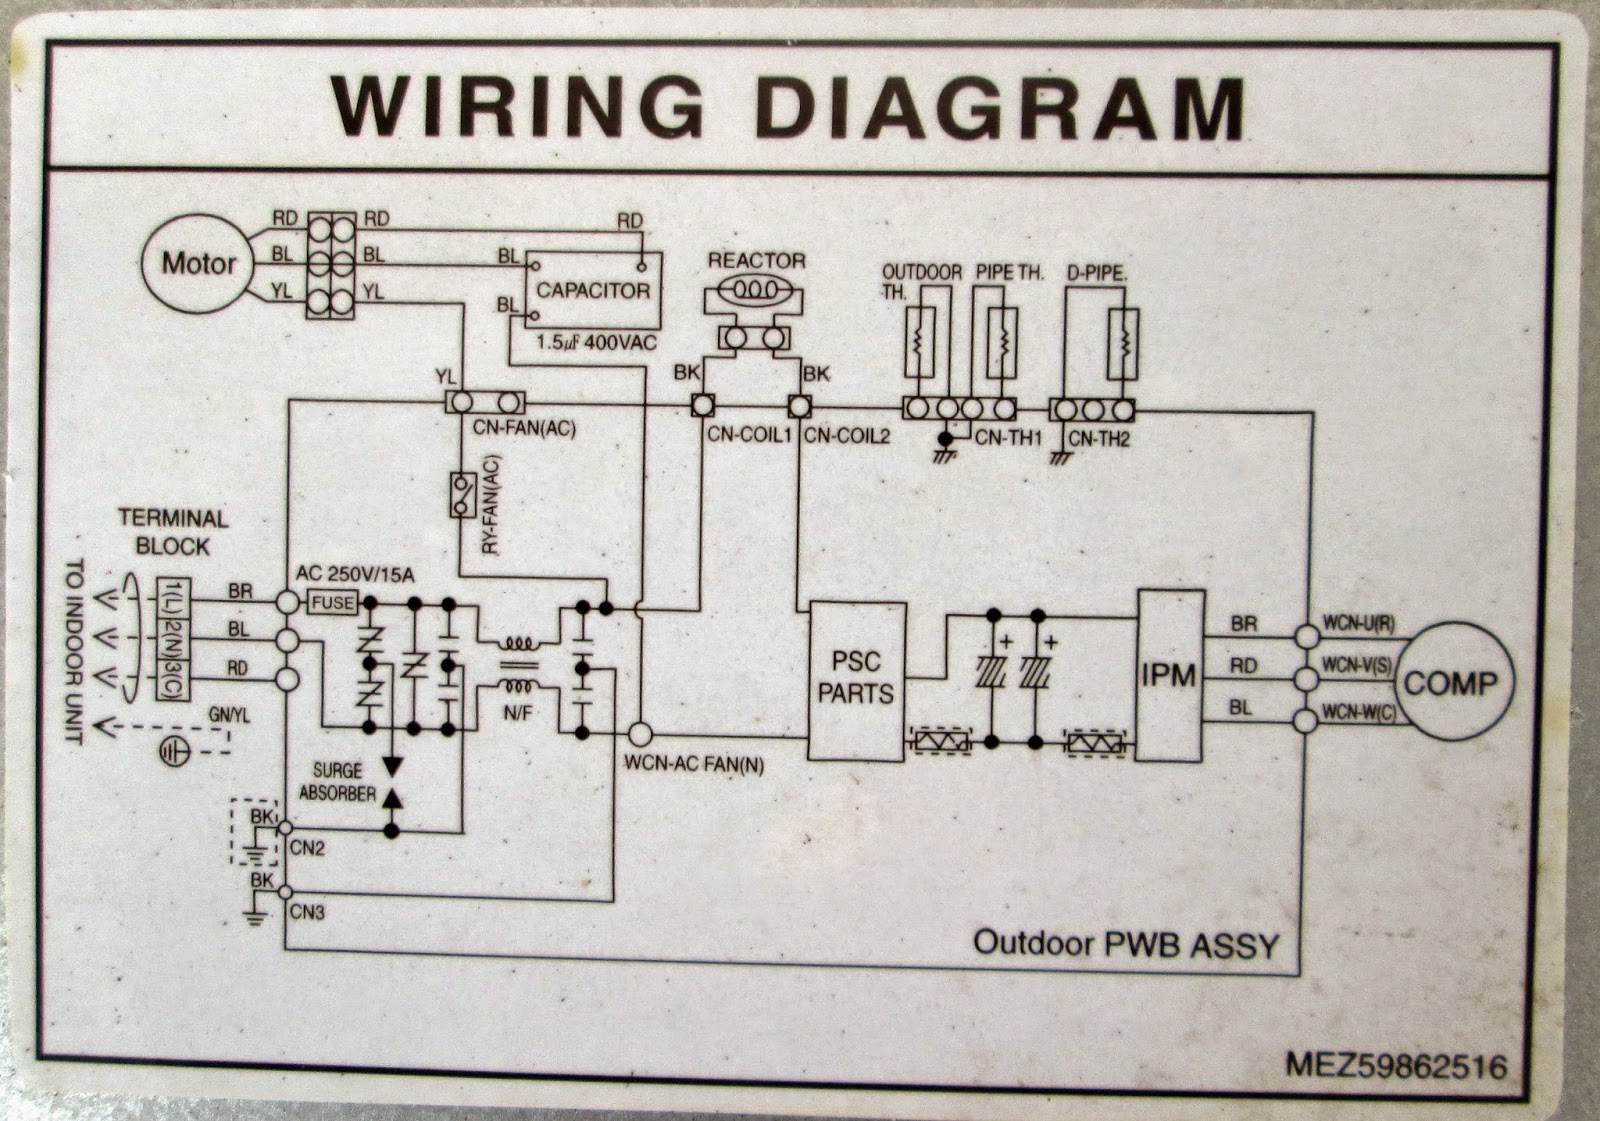 hight resolution of split ac unit wiring diagram wiring diagram show wiring diagram of a split air conditioner single